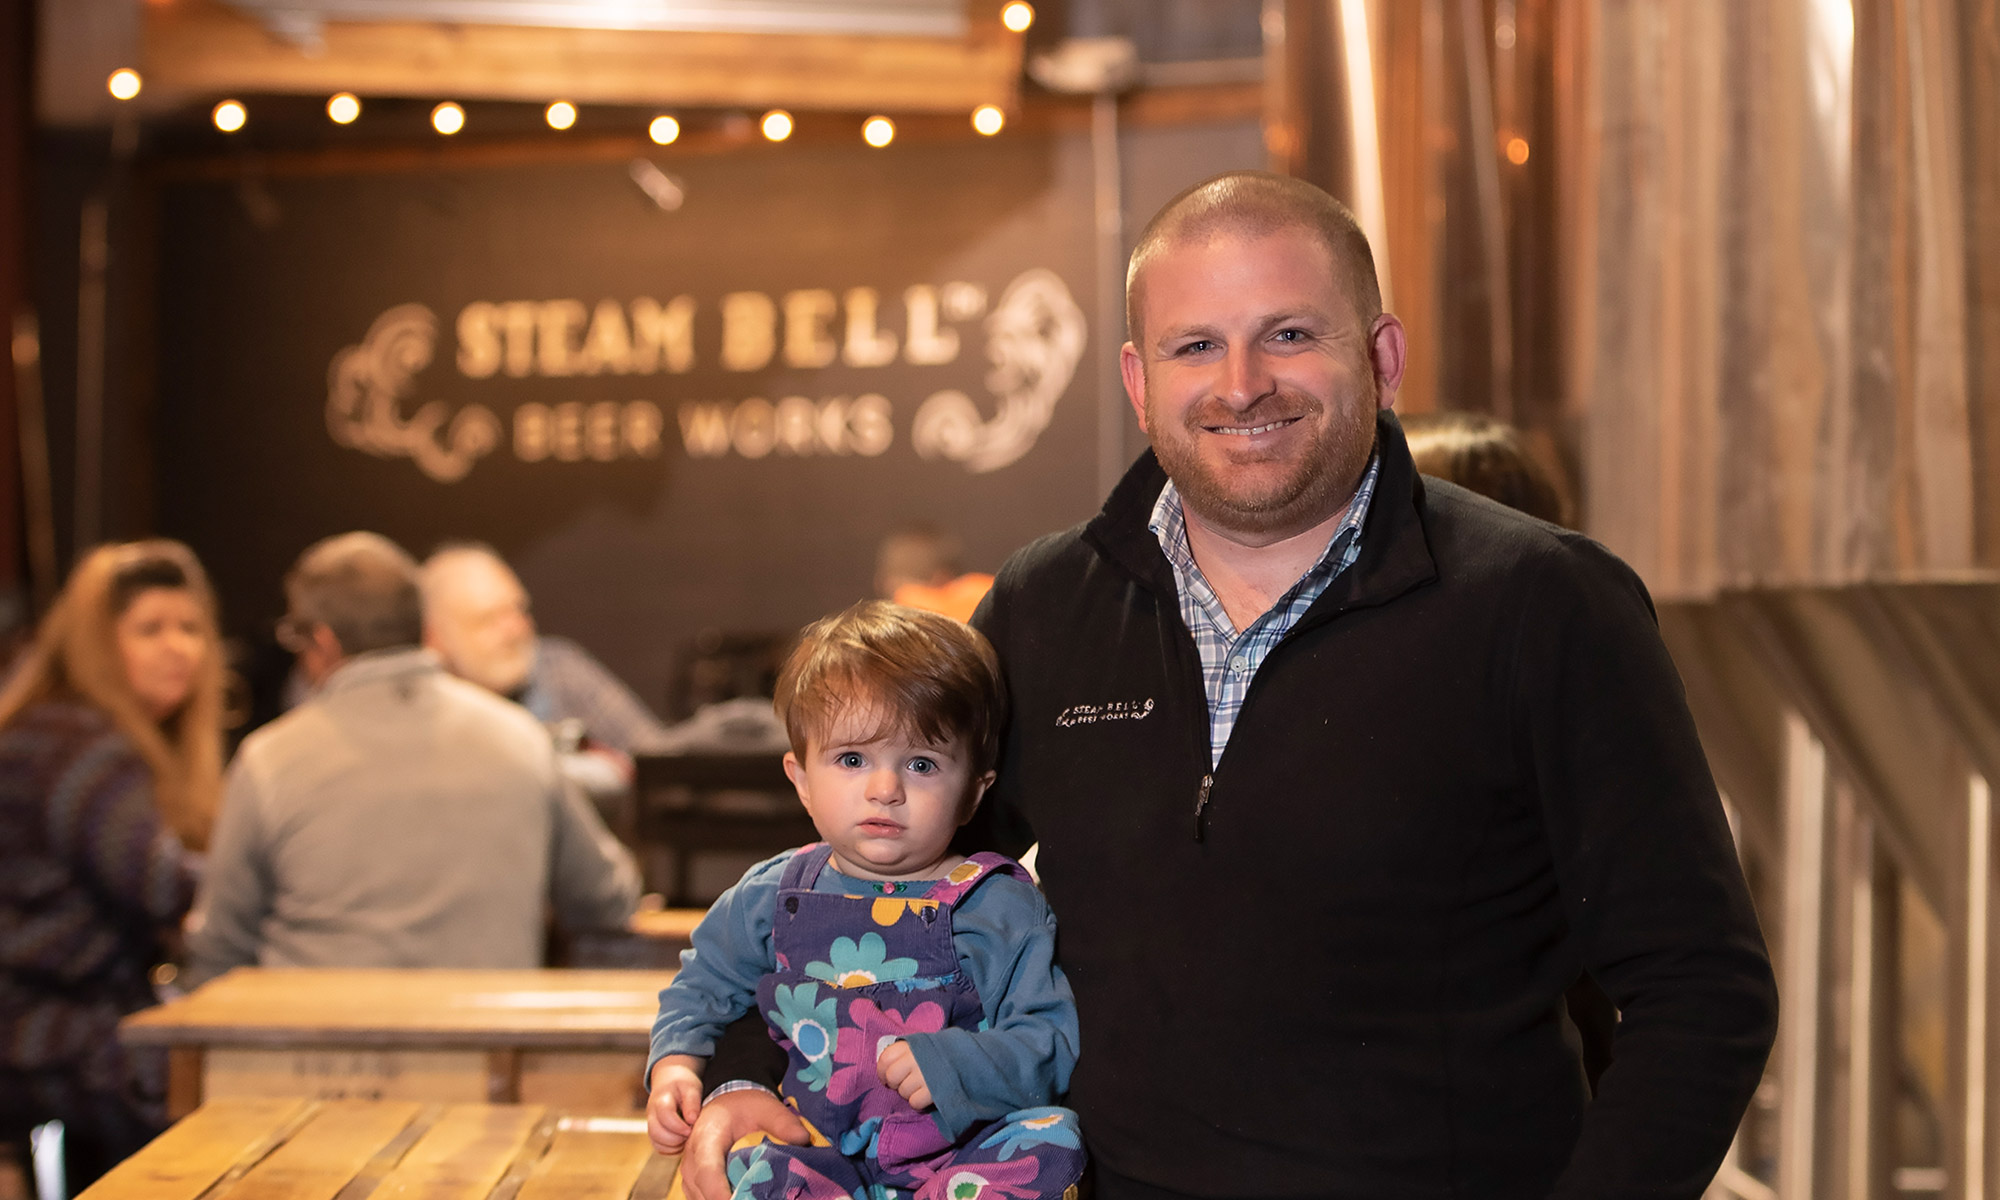 Brad Cooper with daughter Caroline - Steam Bell Beer Works